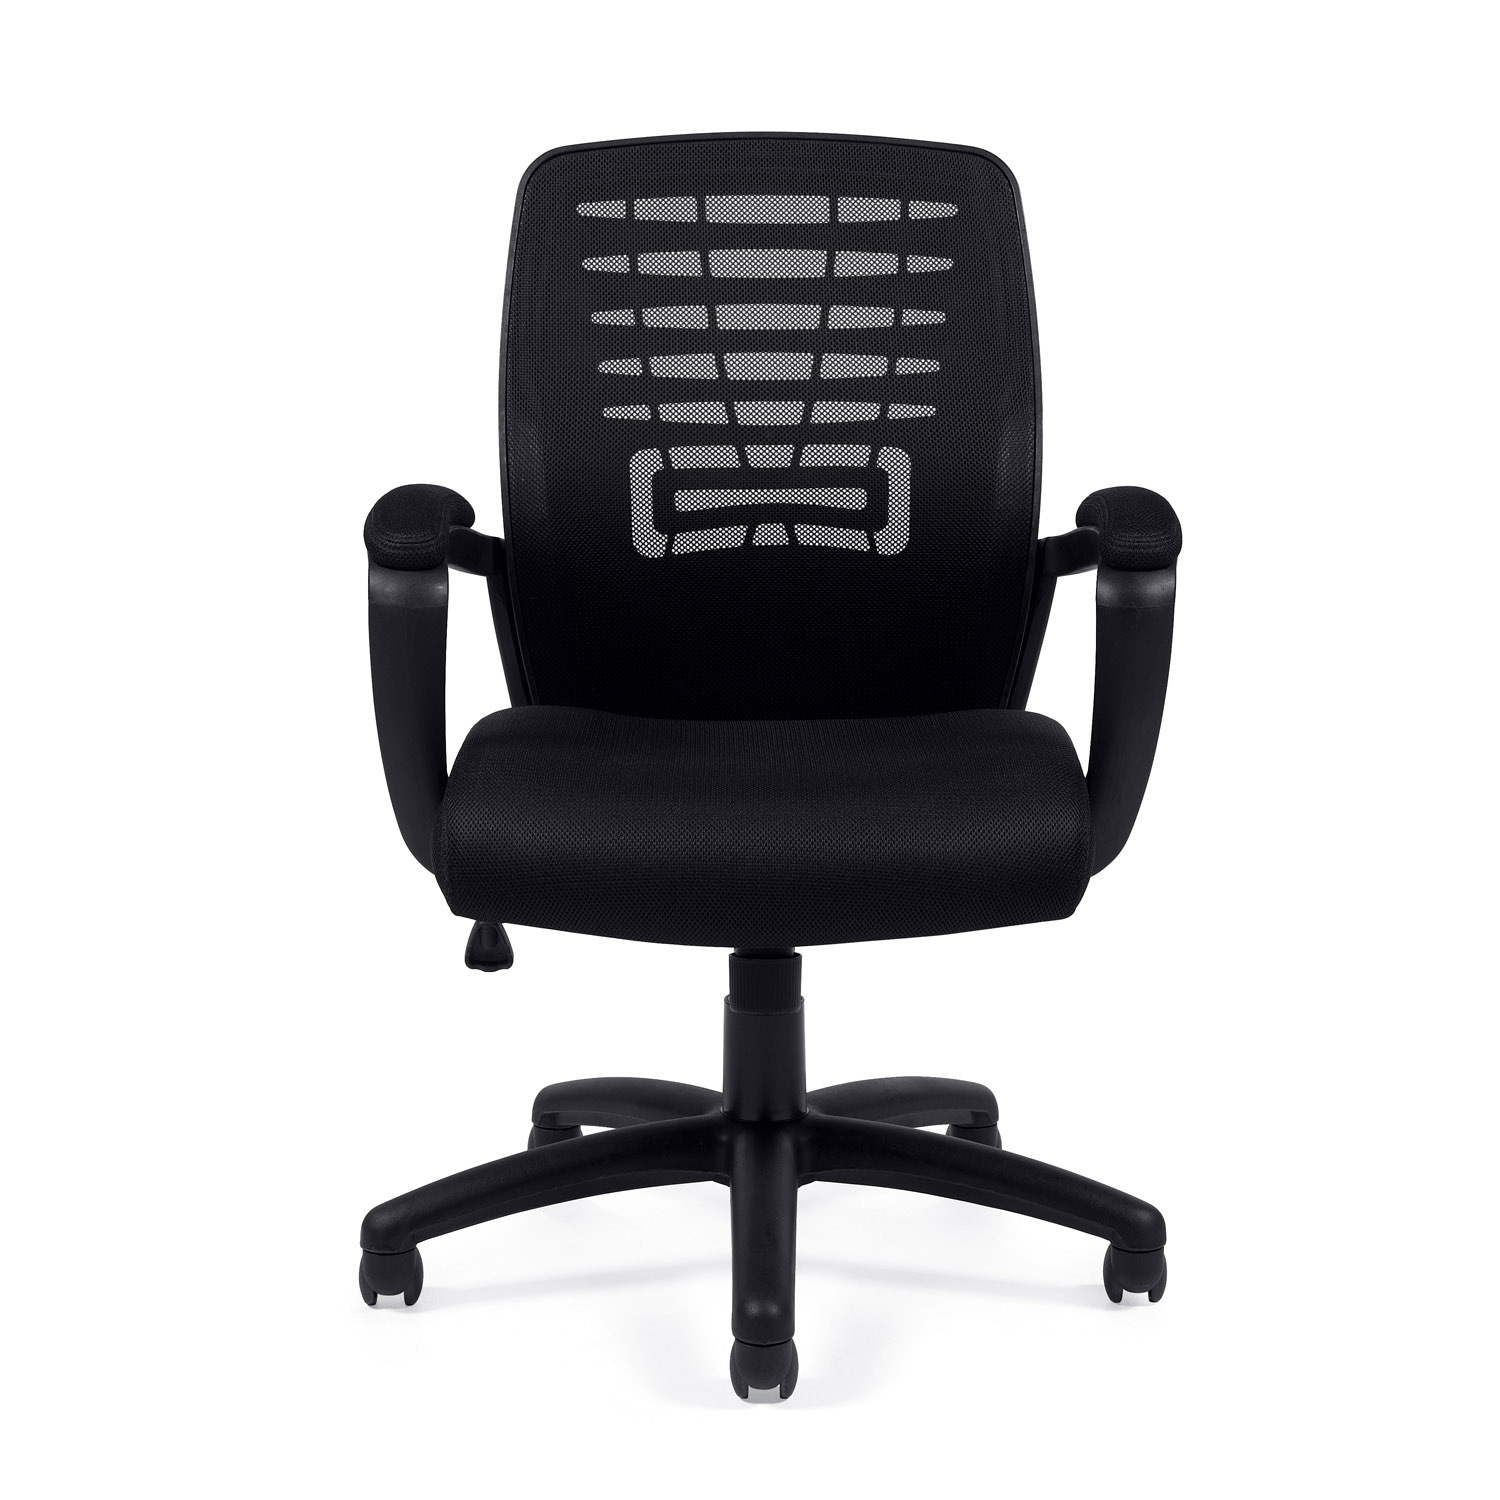 Cheap Desk Chairs Discount Chairs fice Furniture Chairs